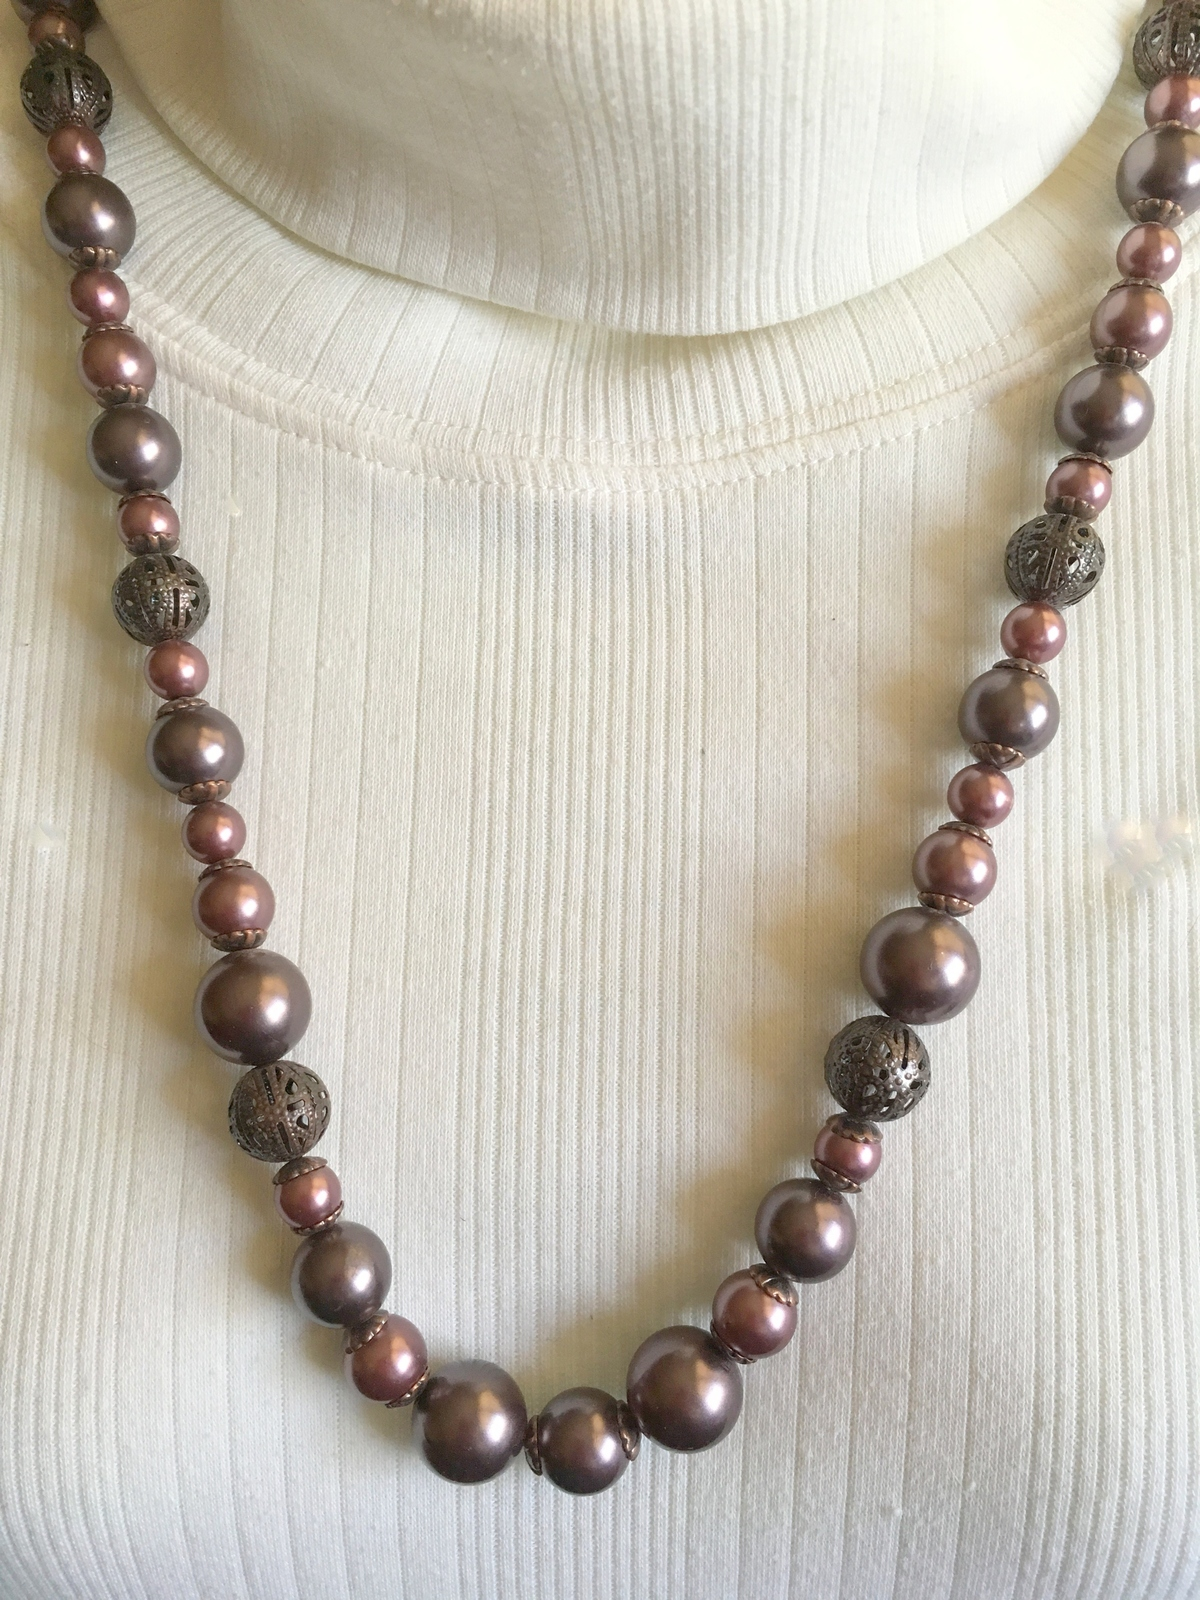 Mauve/Dark Gray Beaded Necklace, Vintage Necklace, Gift Idea 4 Her, Moms Day